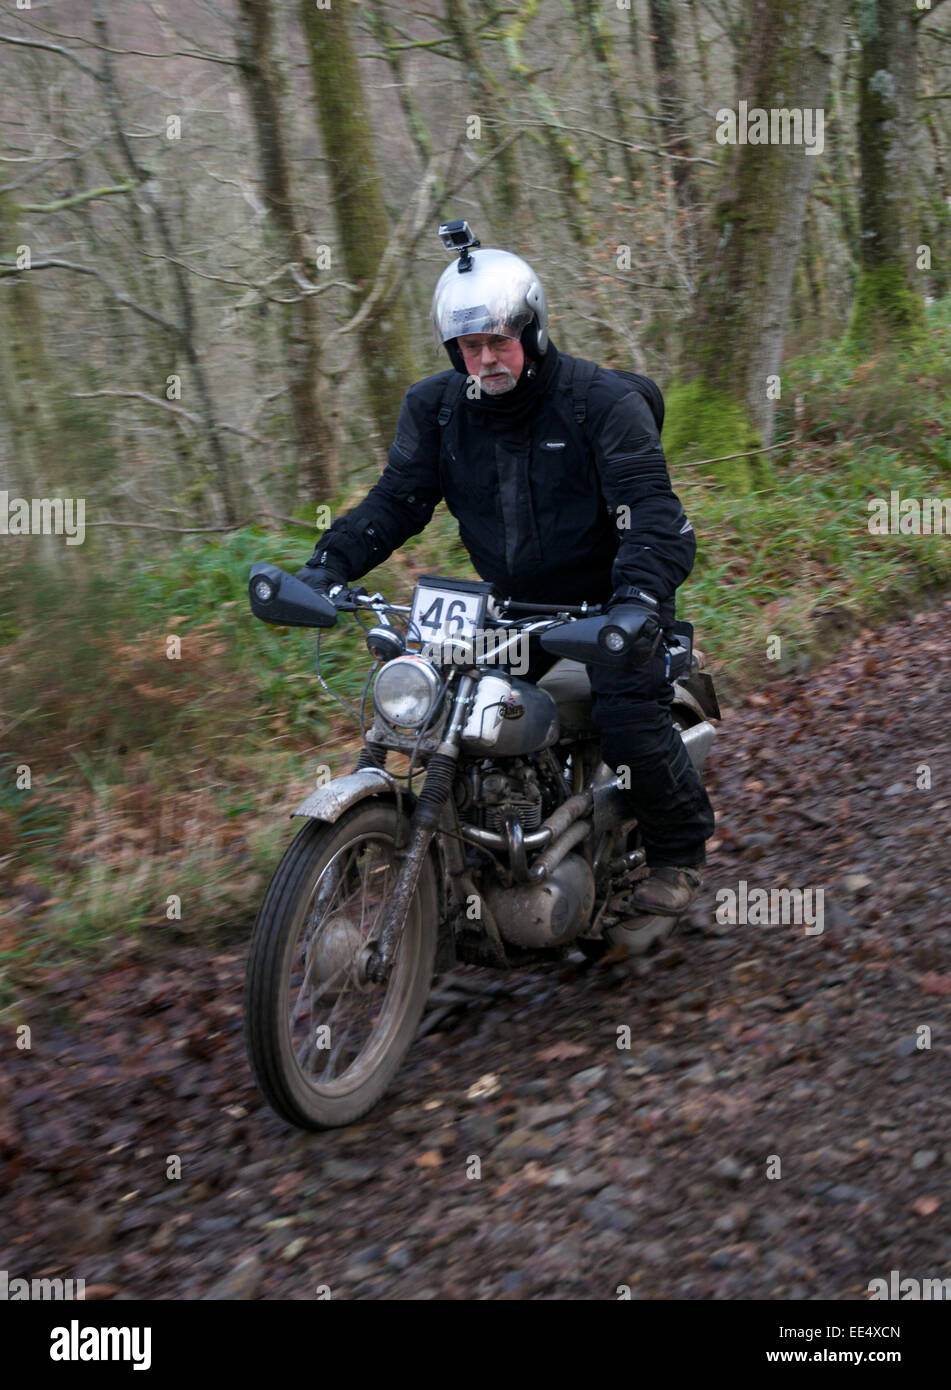 Motorcycle competitors on the Fingle Section of the 2015 Exeter Trial. Stock Photo